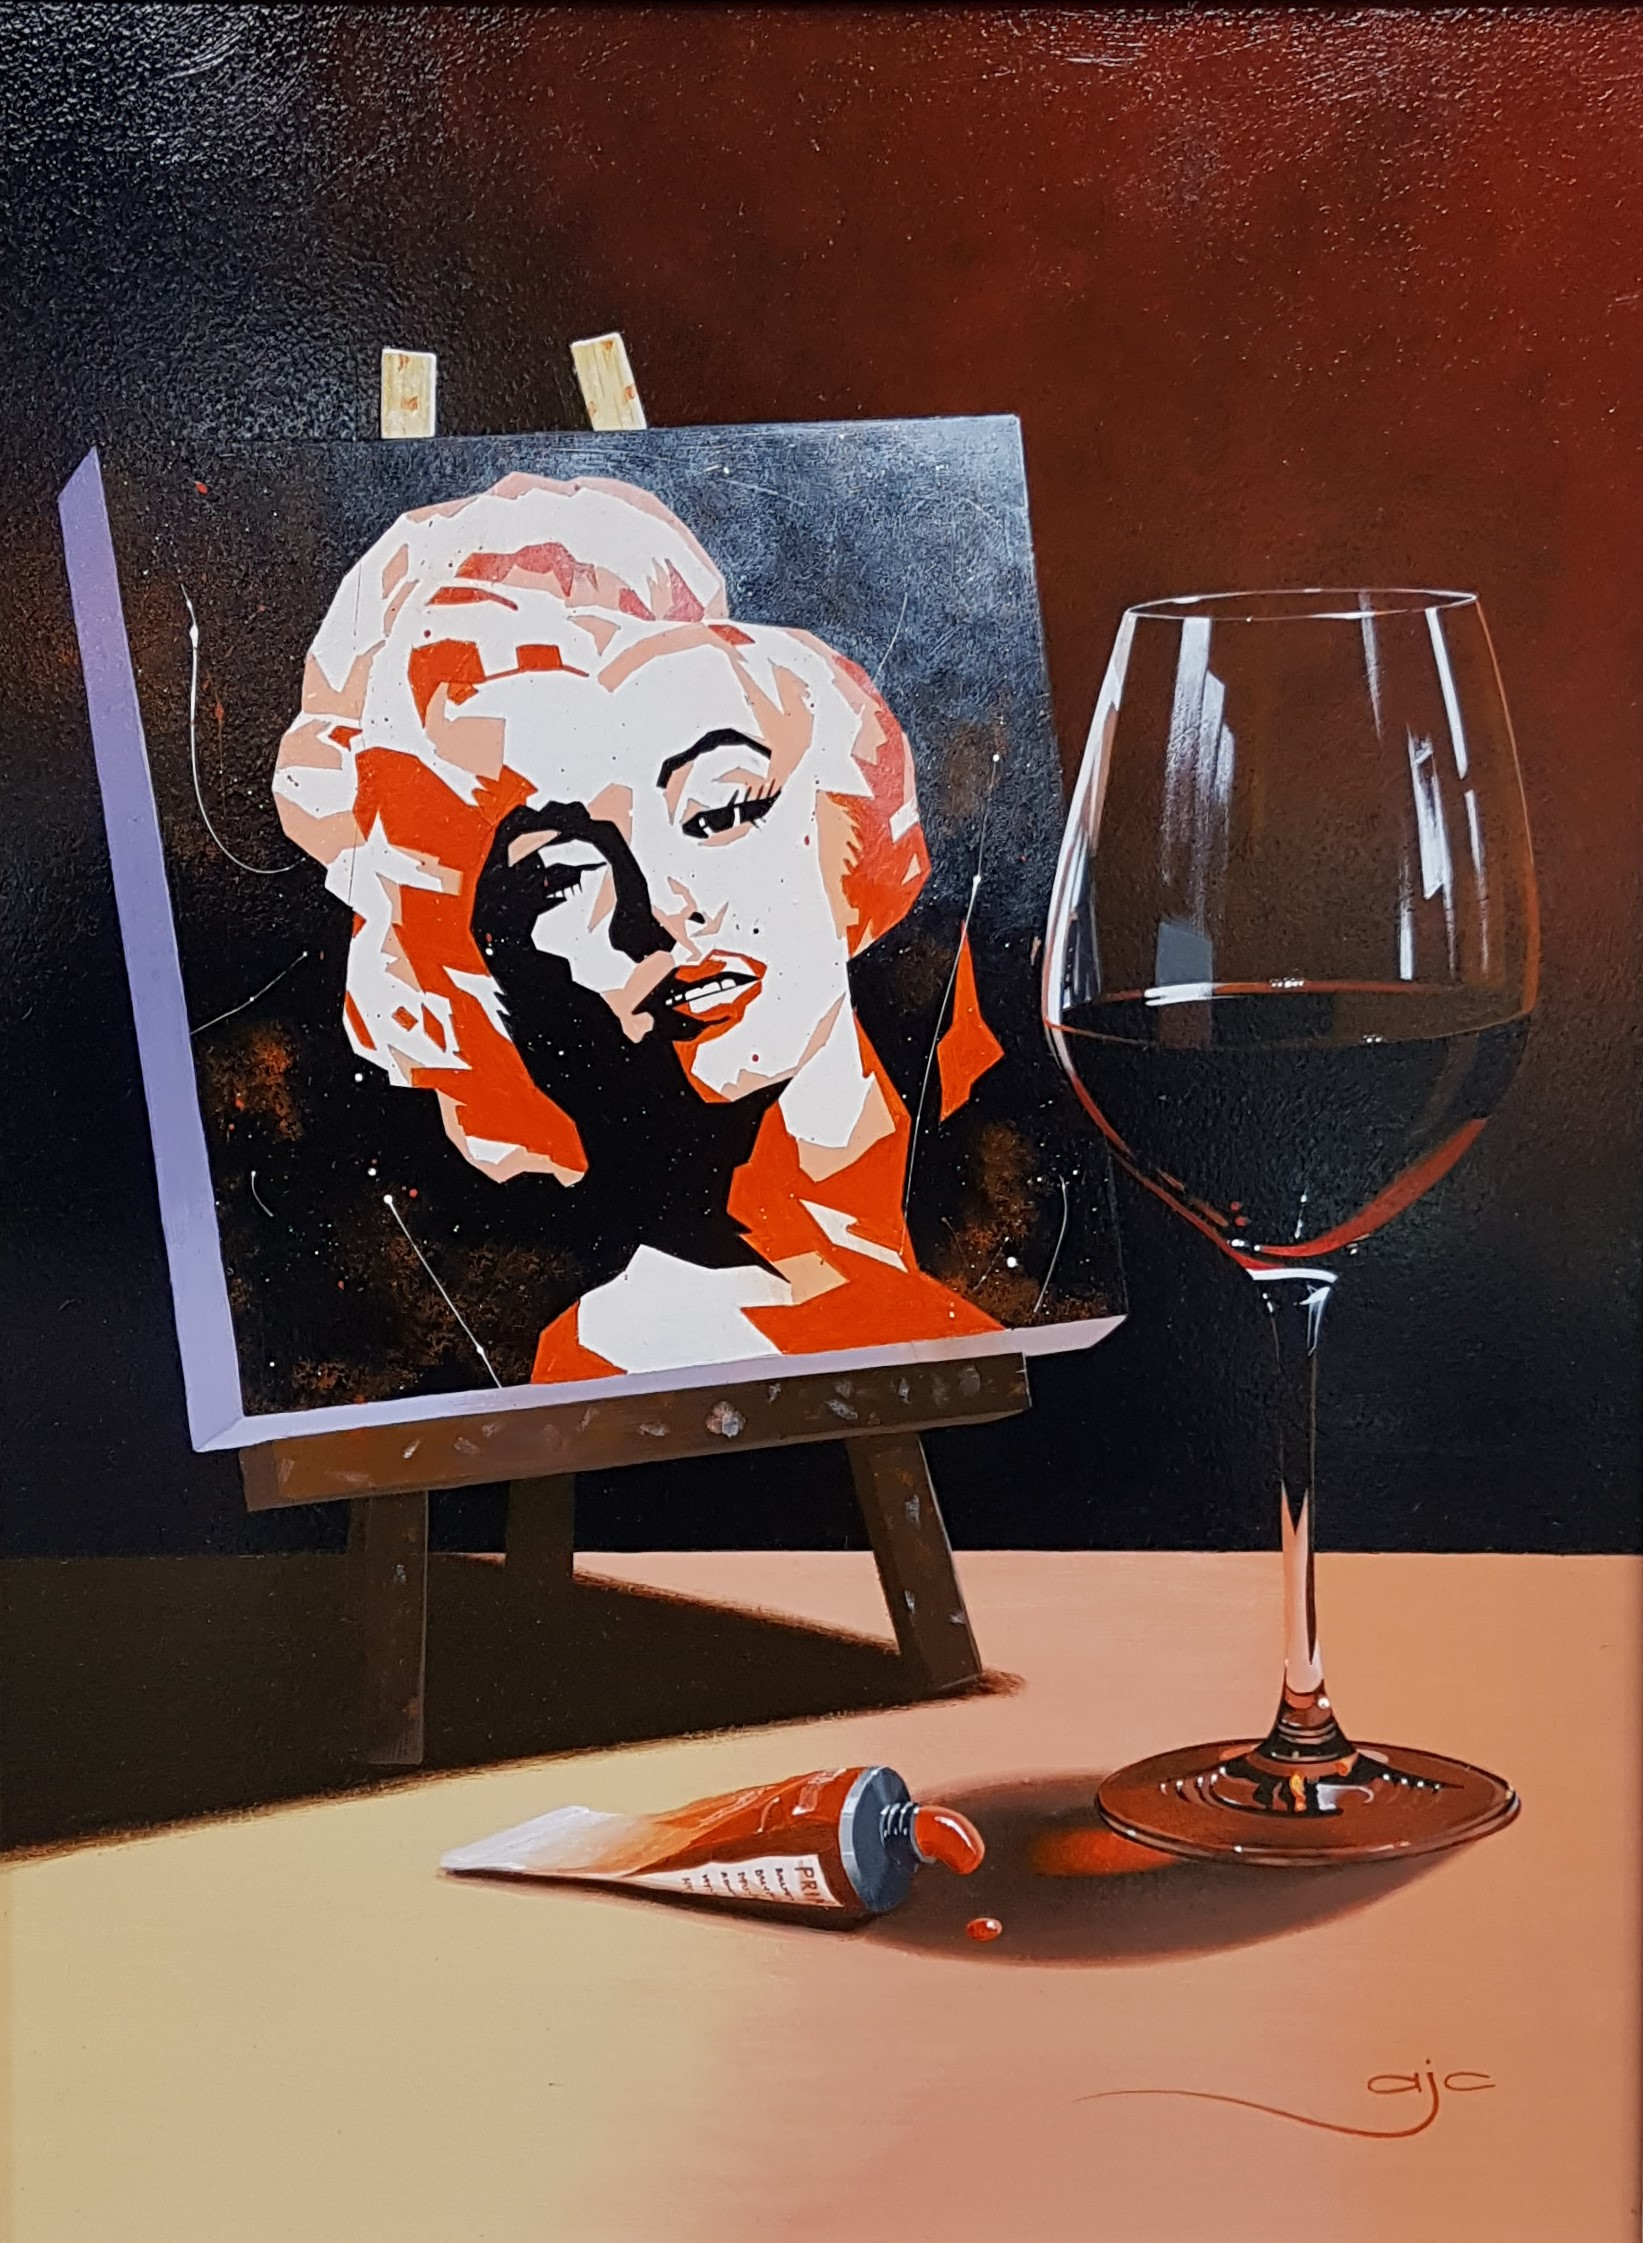 Still Life with Marilyn Monroe